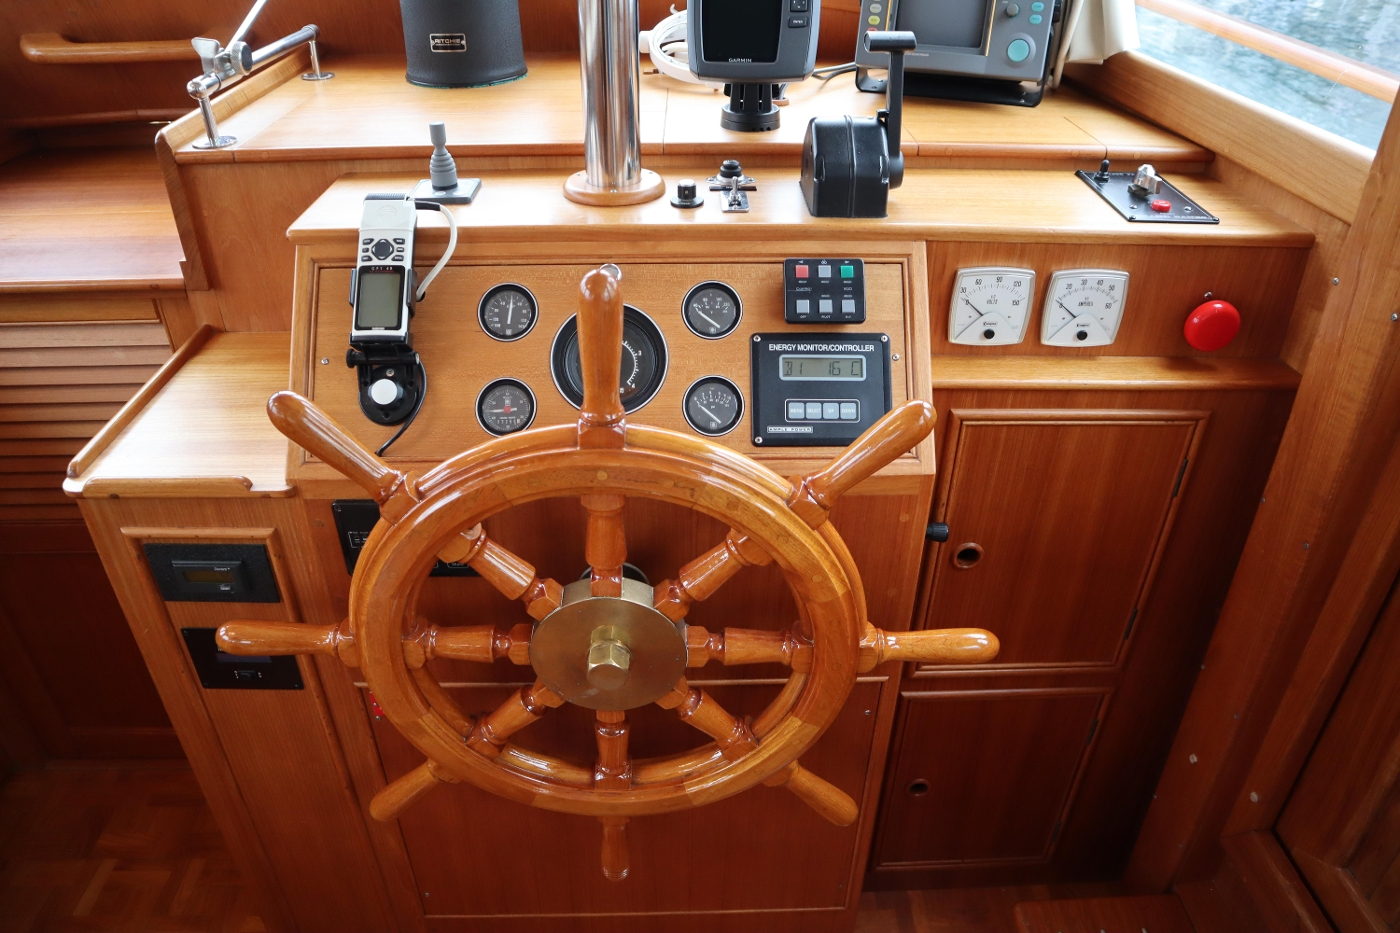 1995 Grand Banks 36 Classic, Lower Helm Station